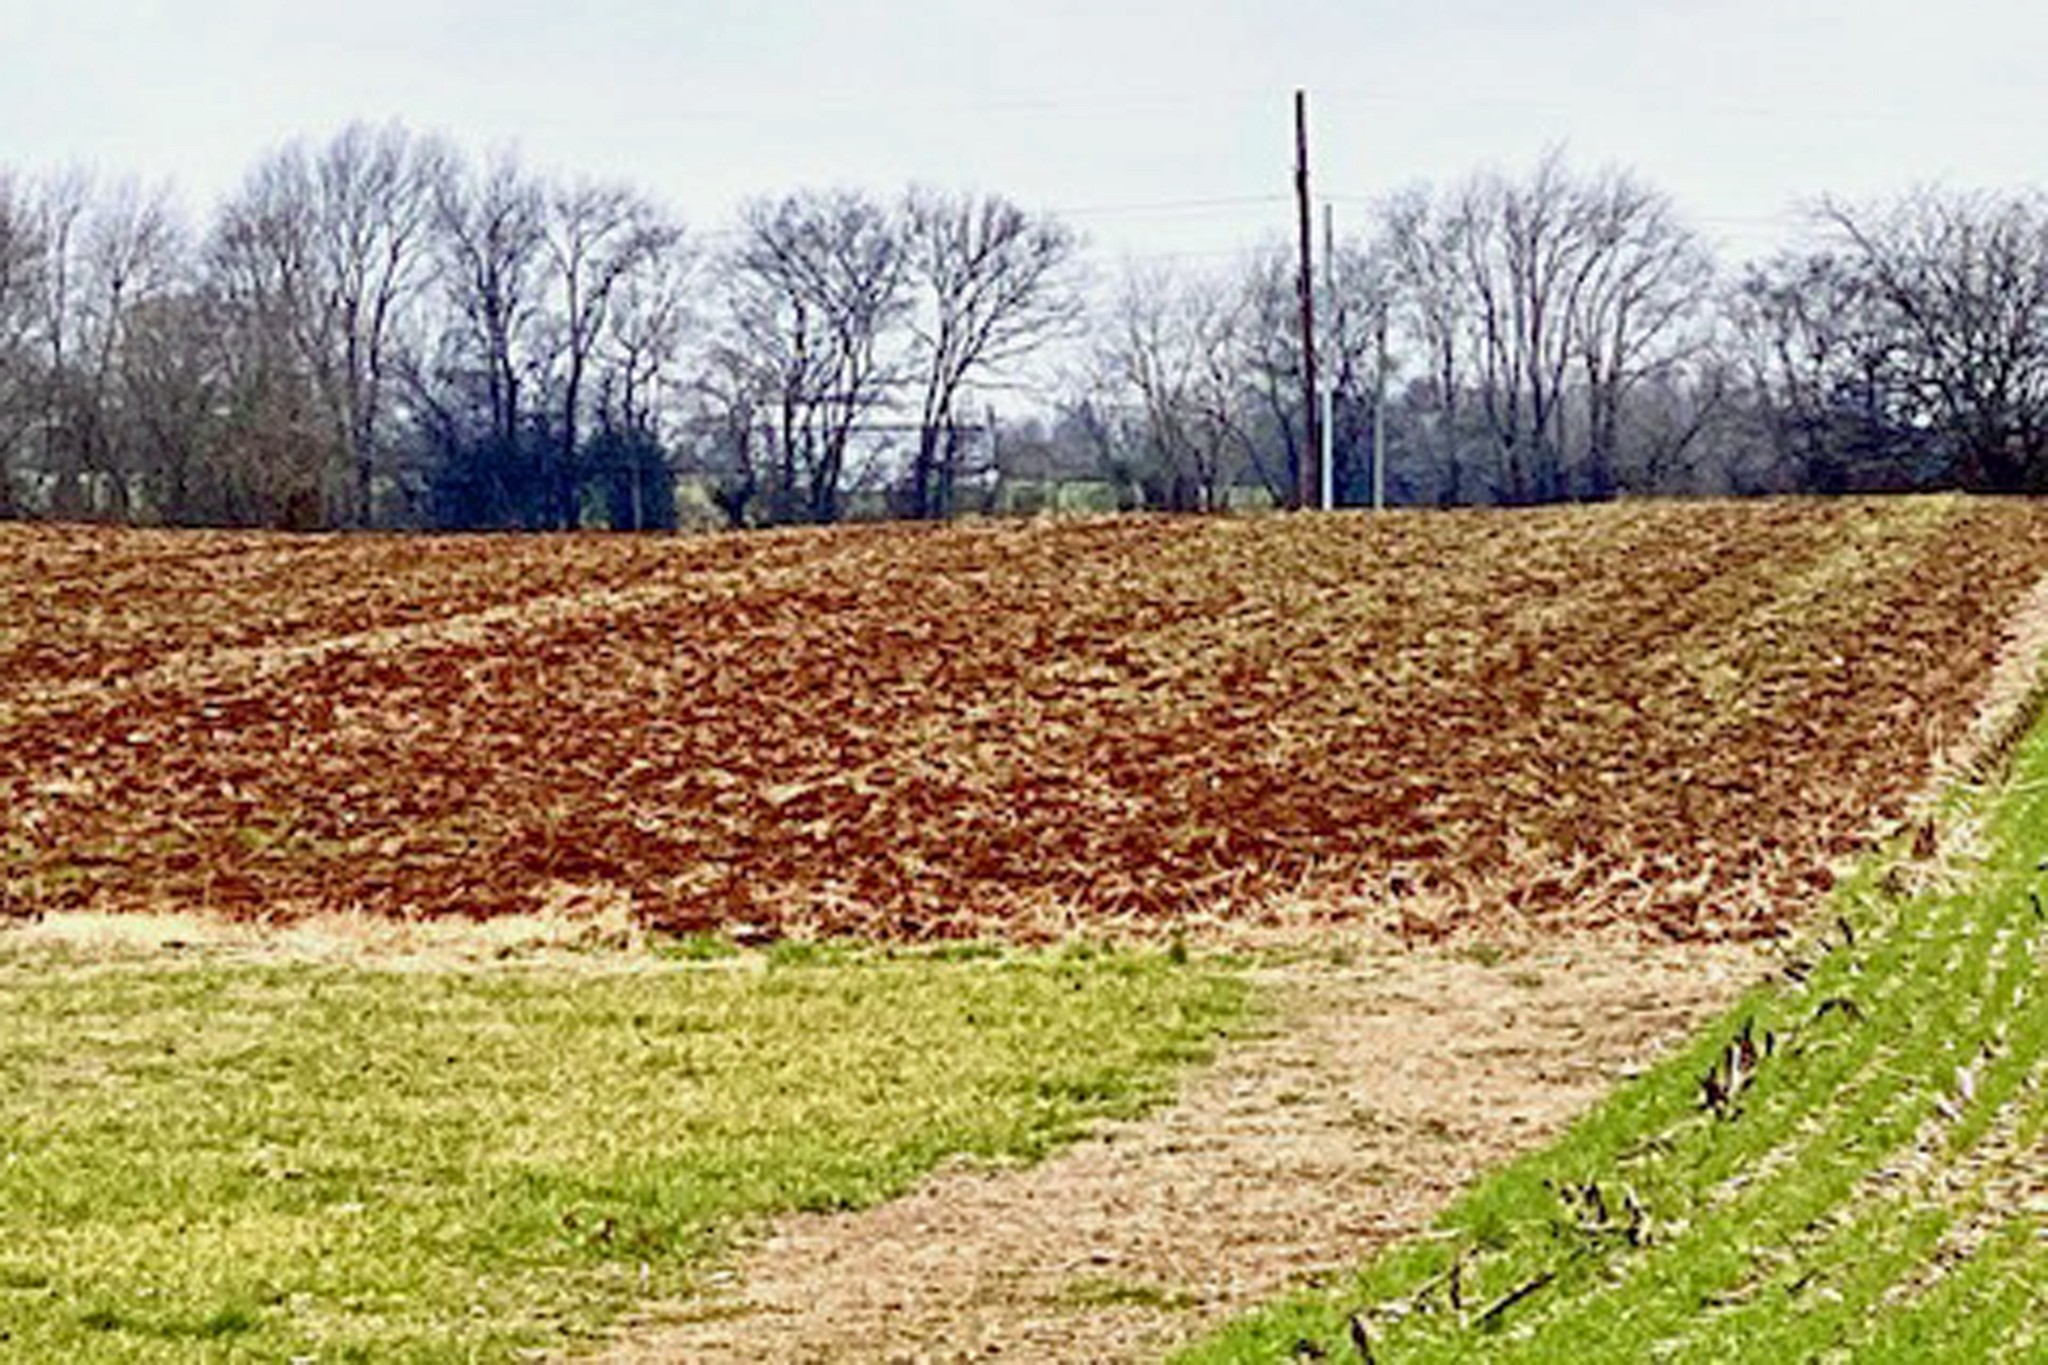 0 Lot Blackjack Rd/North St, Franklin, KY 42134 - Franklin, KY real estate listing